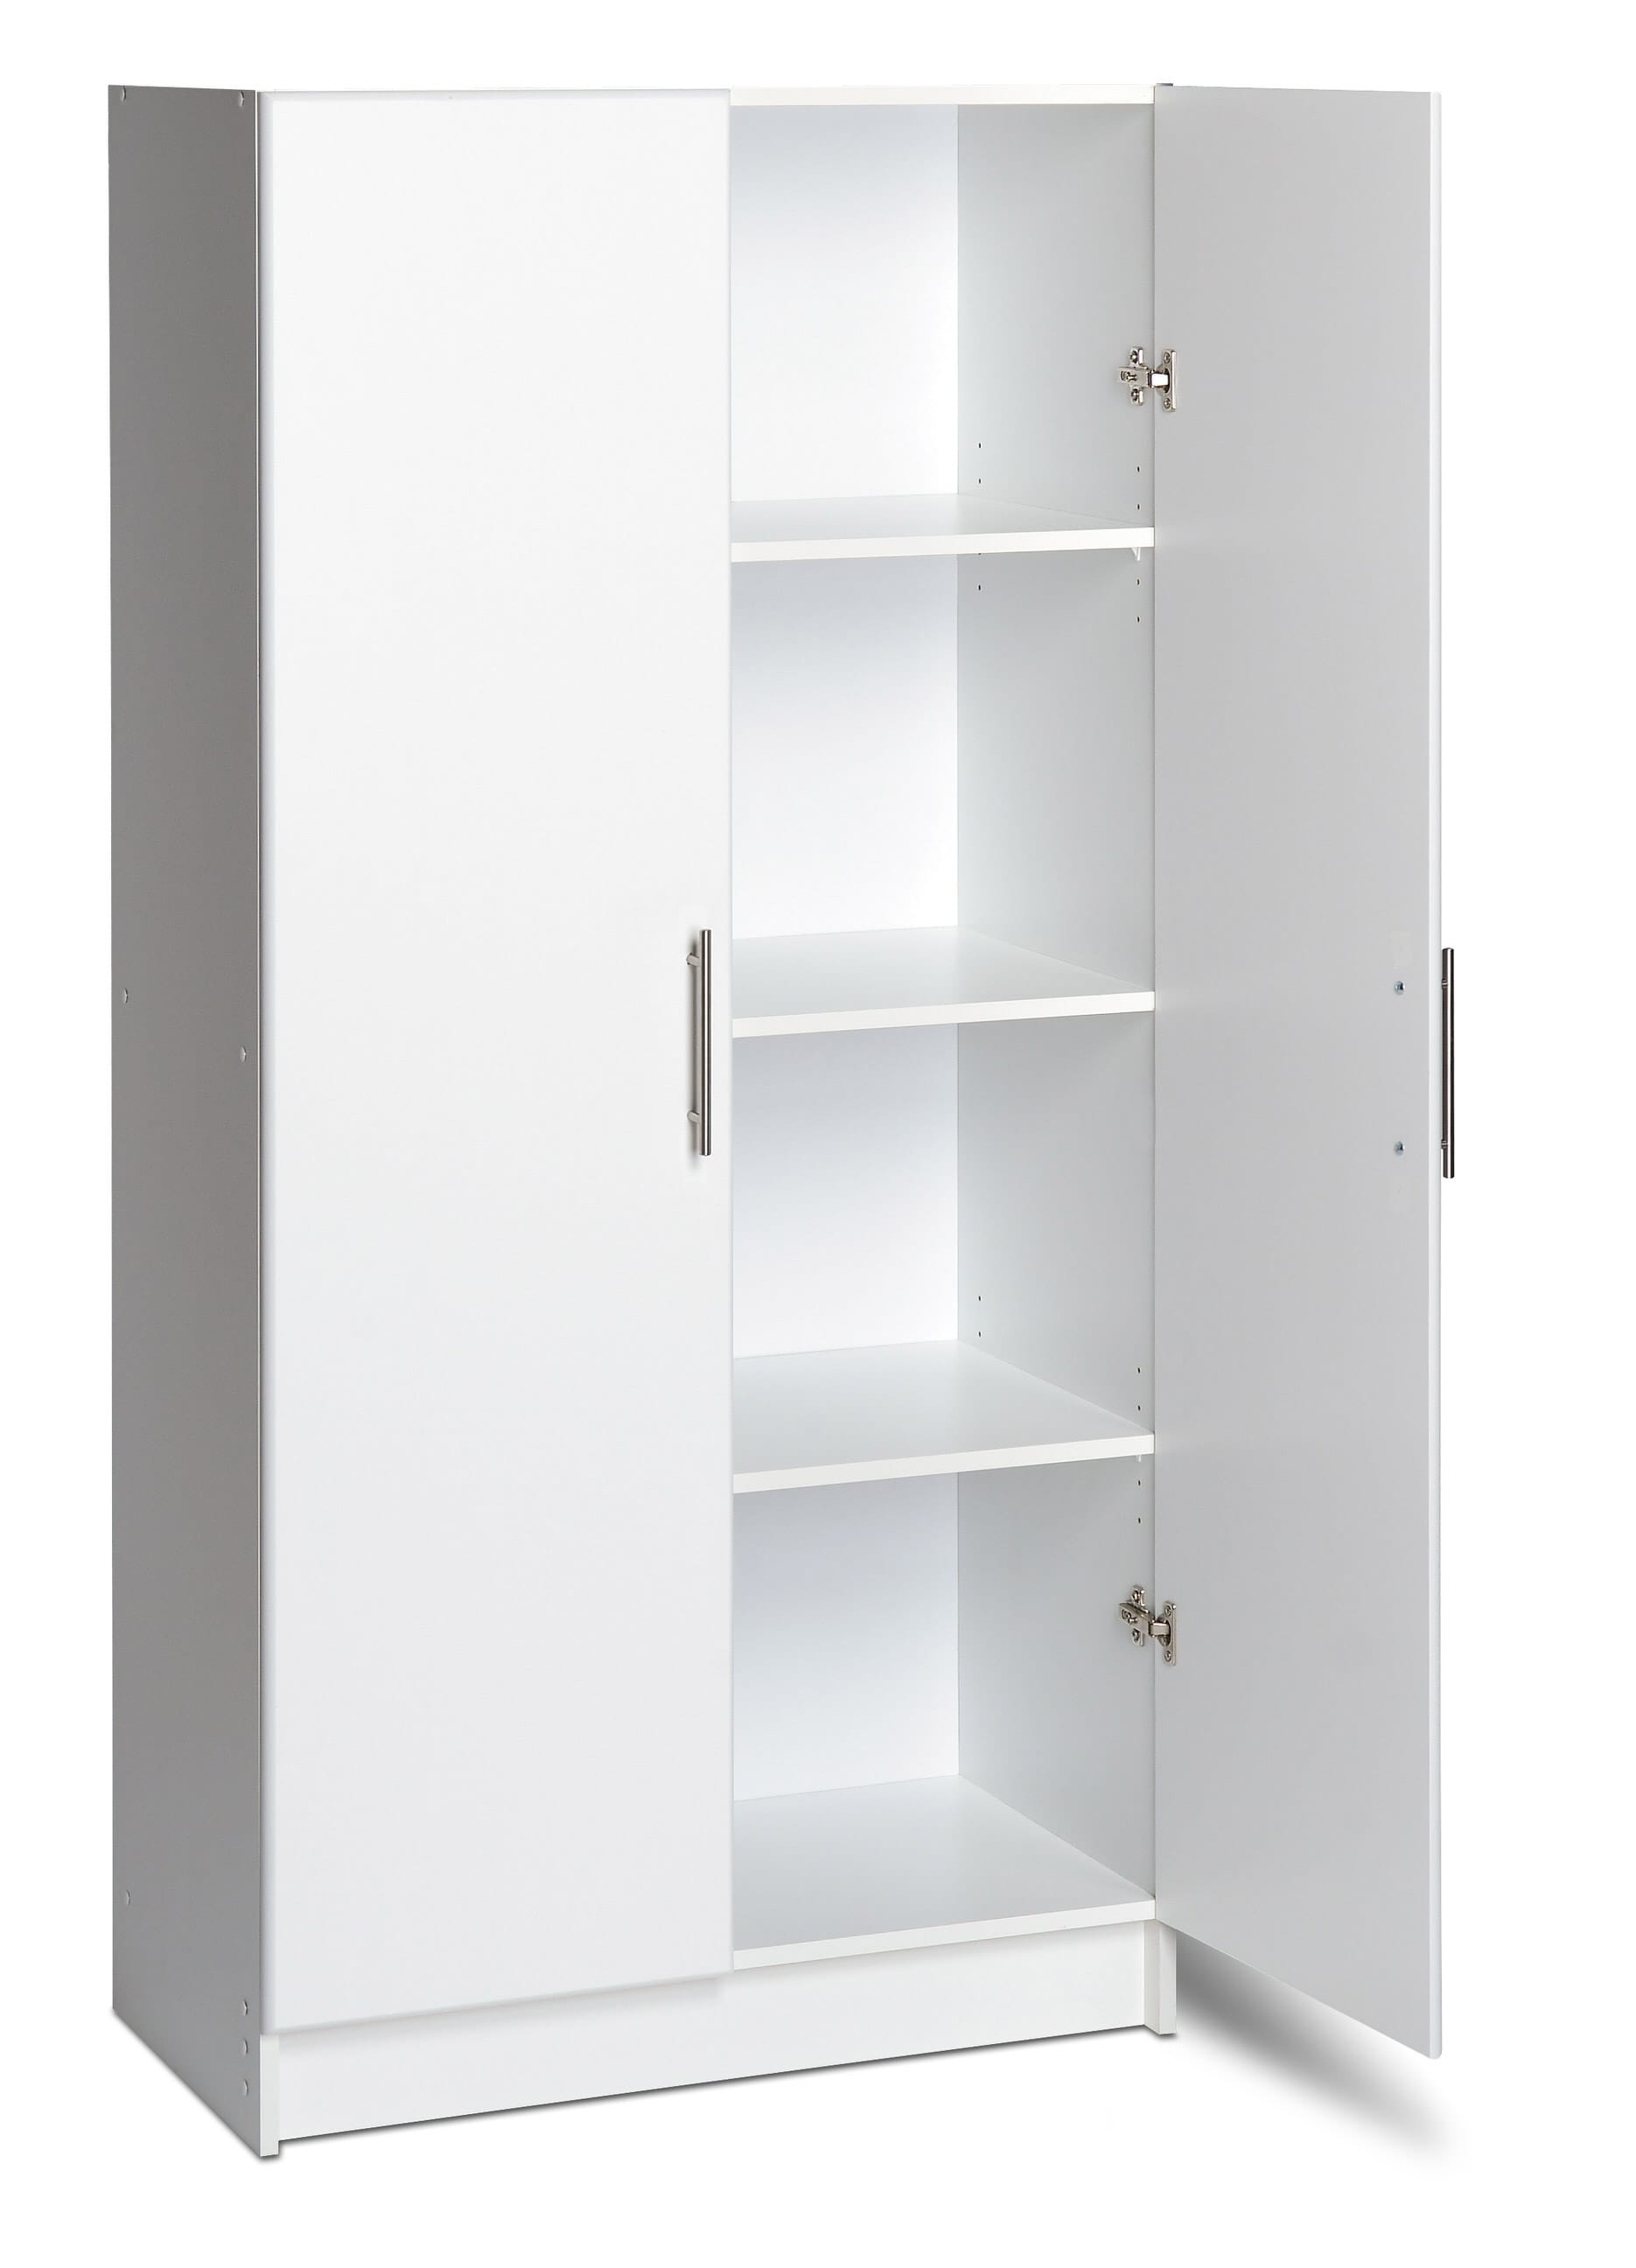 Elite 32 Inch Storage Cabinet by Prepac